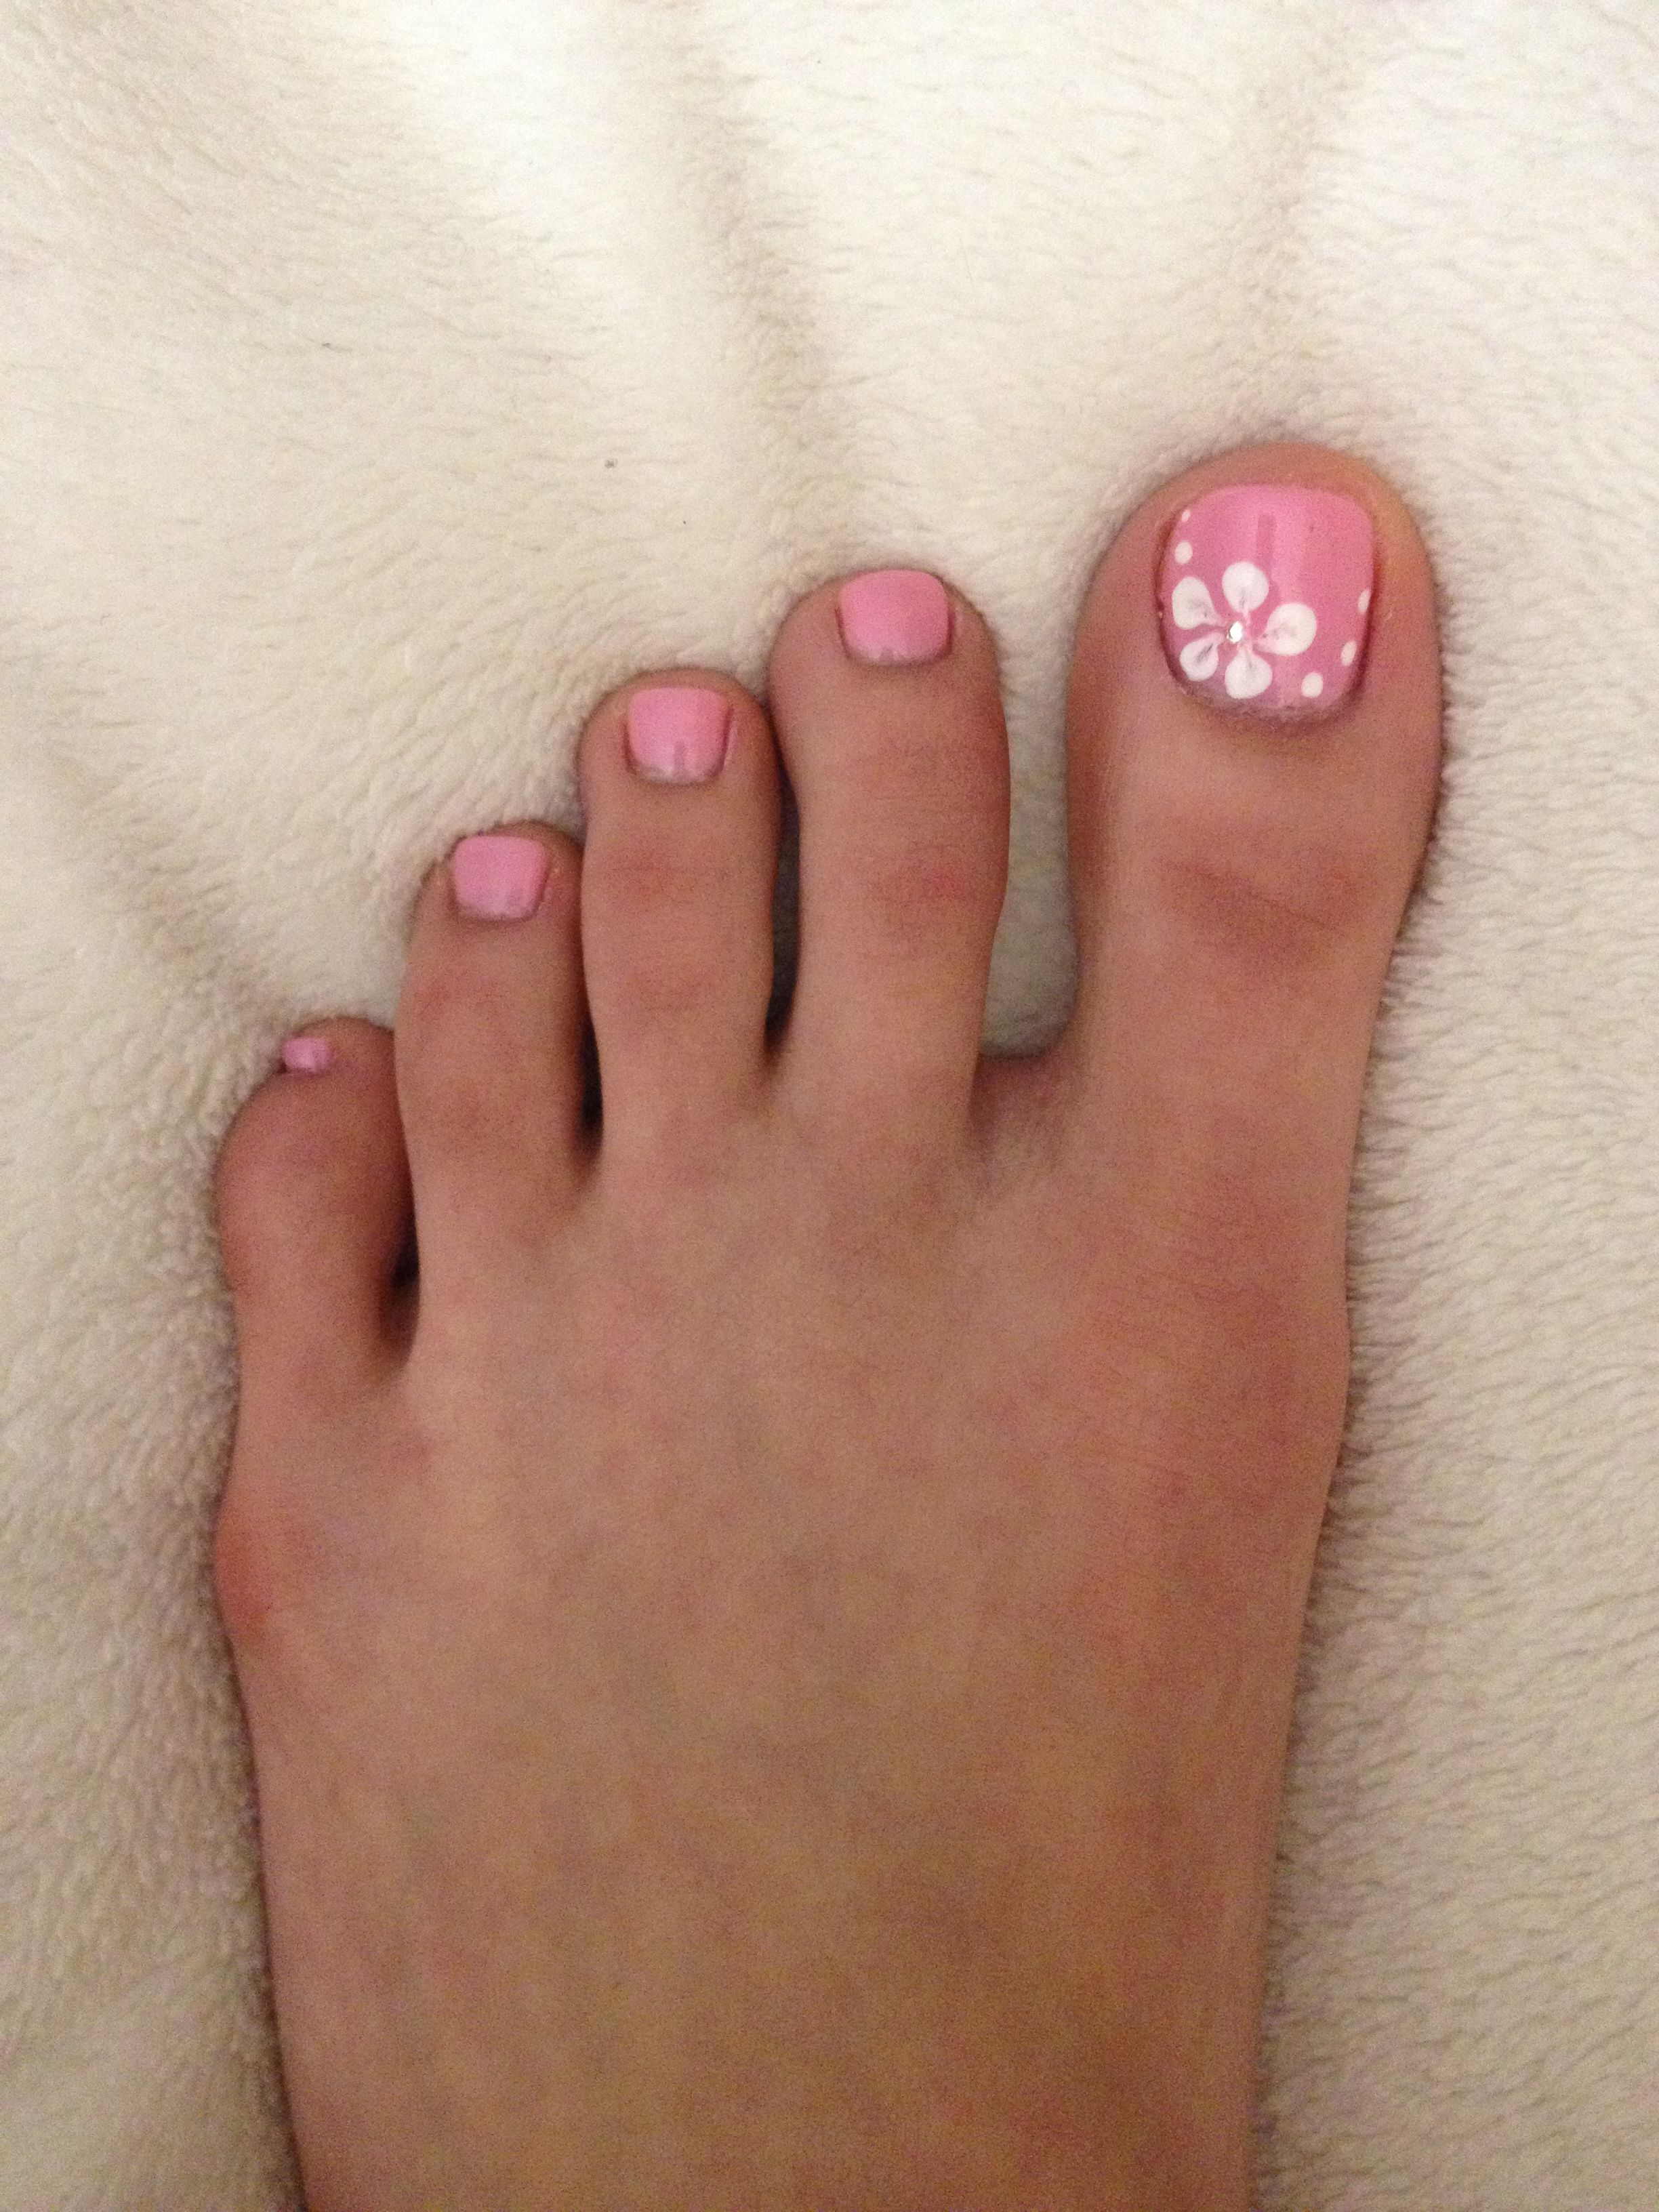 Pretty Toe Nail Polish! If You Have A Toenail Fungus